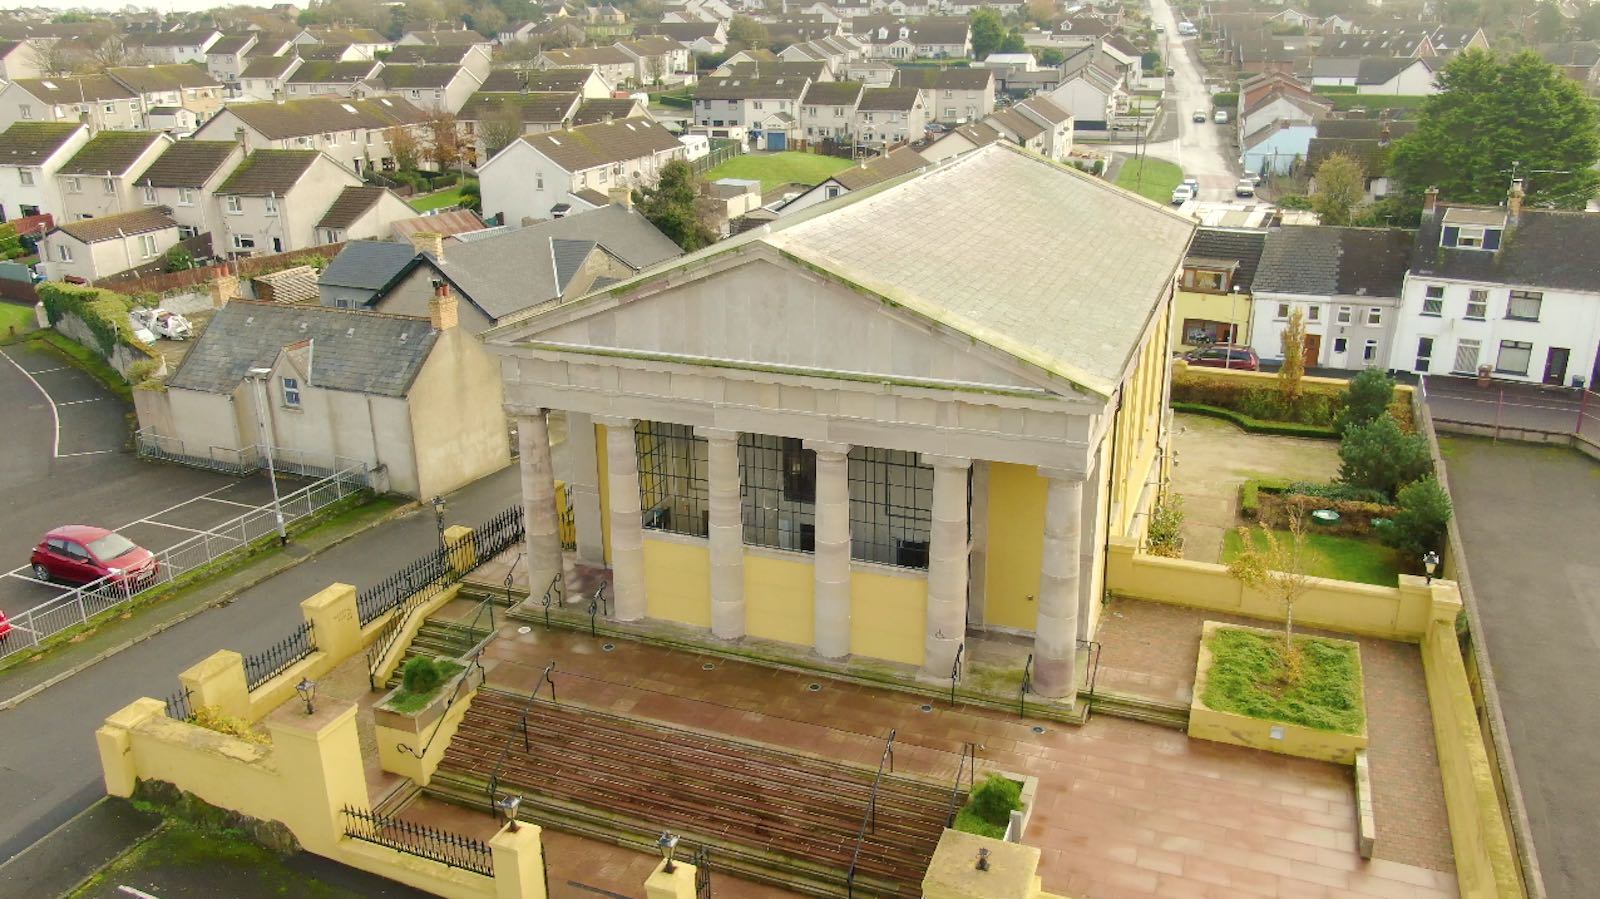 Aerial view of The Portico Ards Portaferry by Bout Yeh drone photography and video production Northern Ireland - image 5